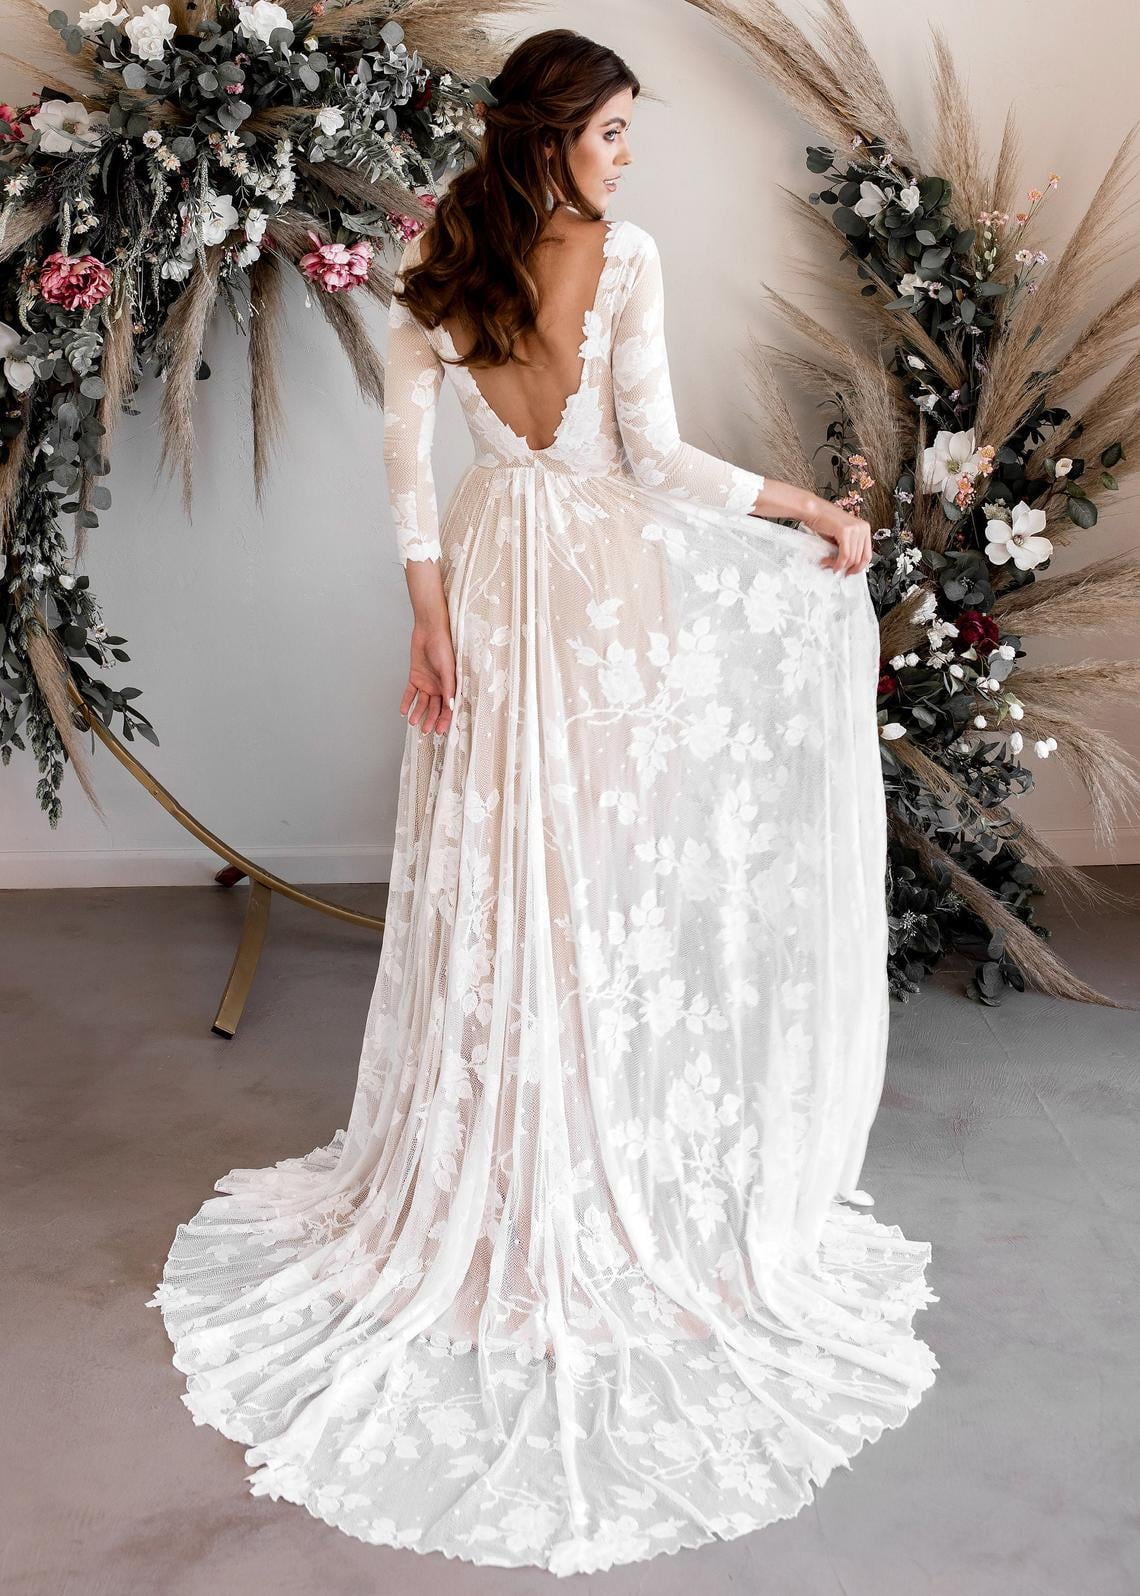 Long Sleeve Wedding Dresses 2020,Beautiful Wedding Dresses 2020,